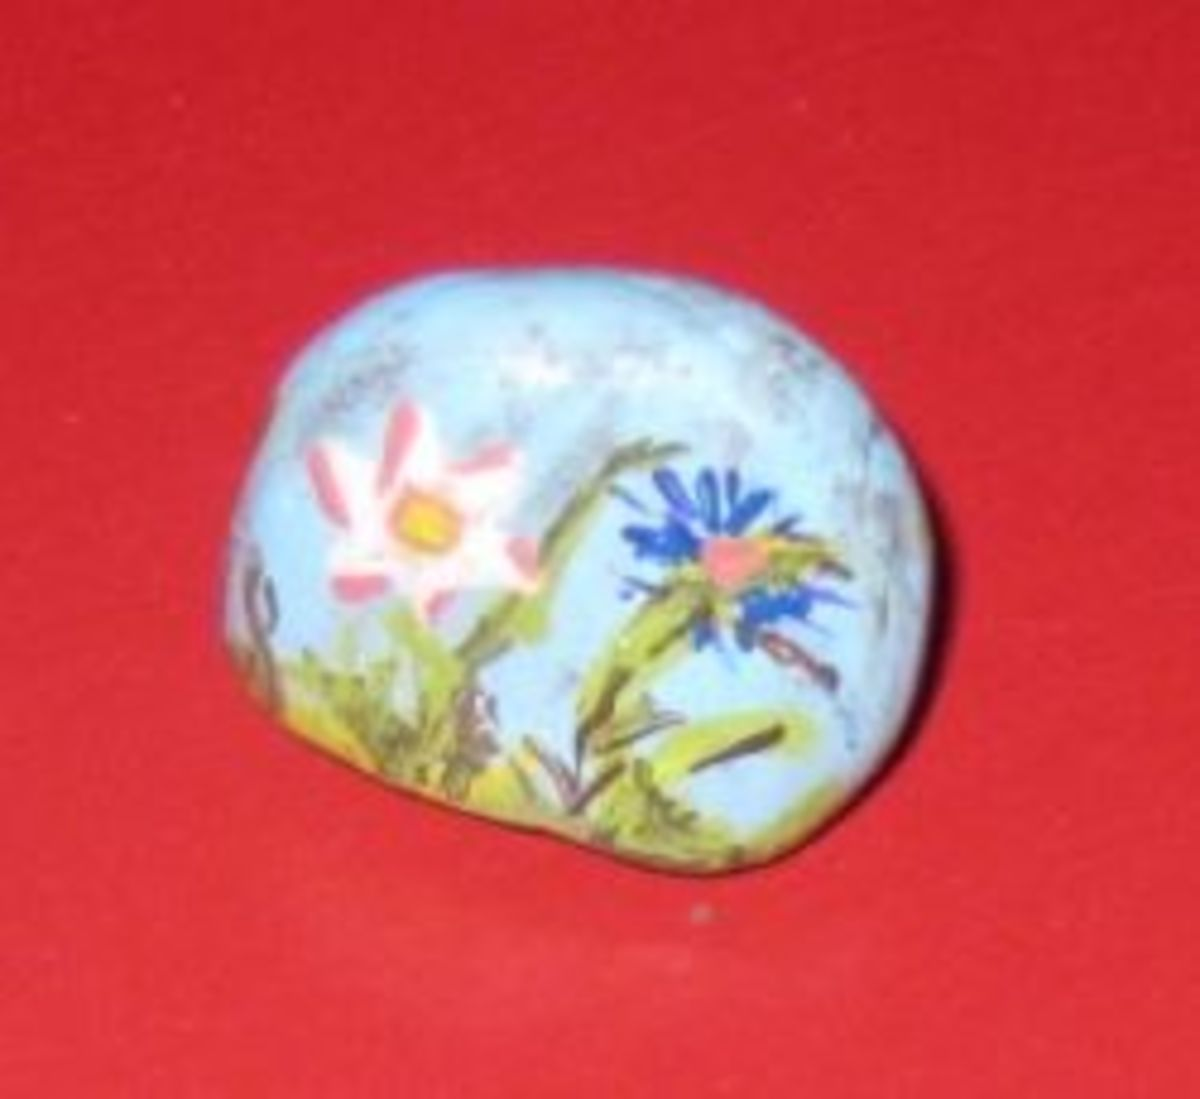 Painted rock with flowers and grass.